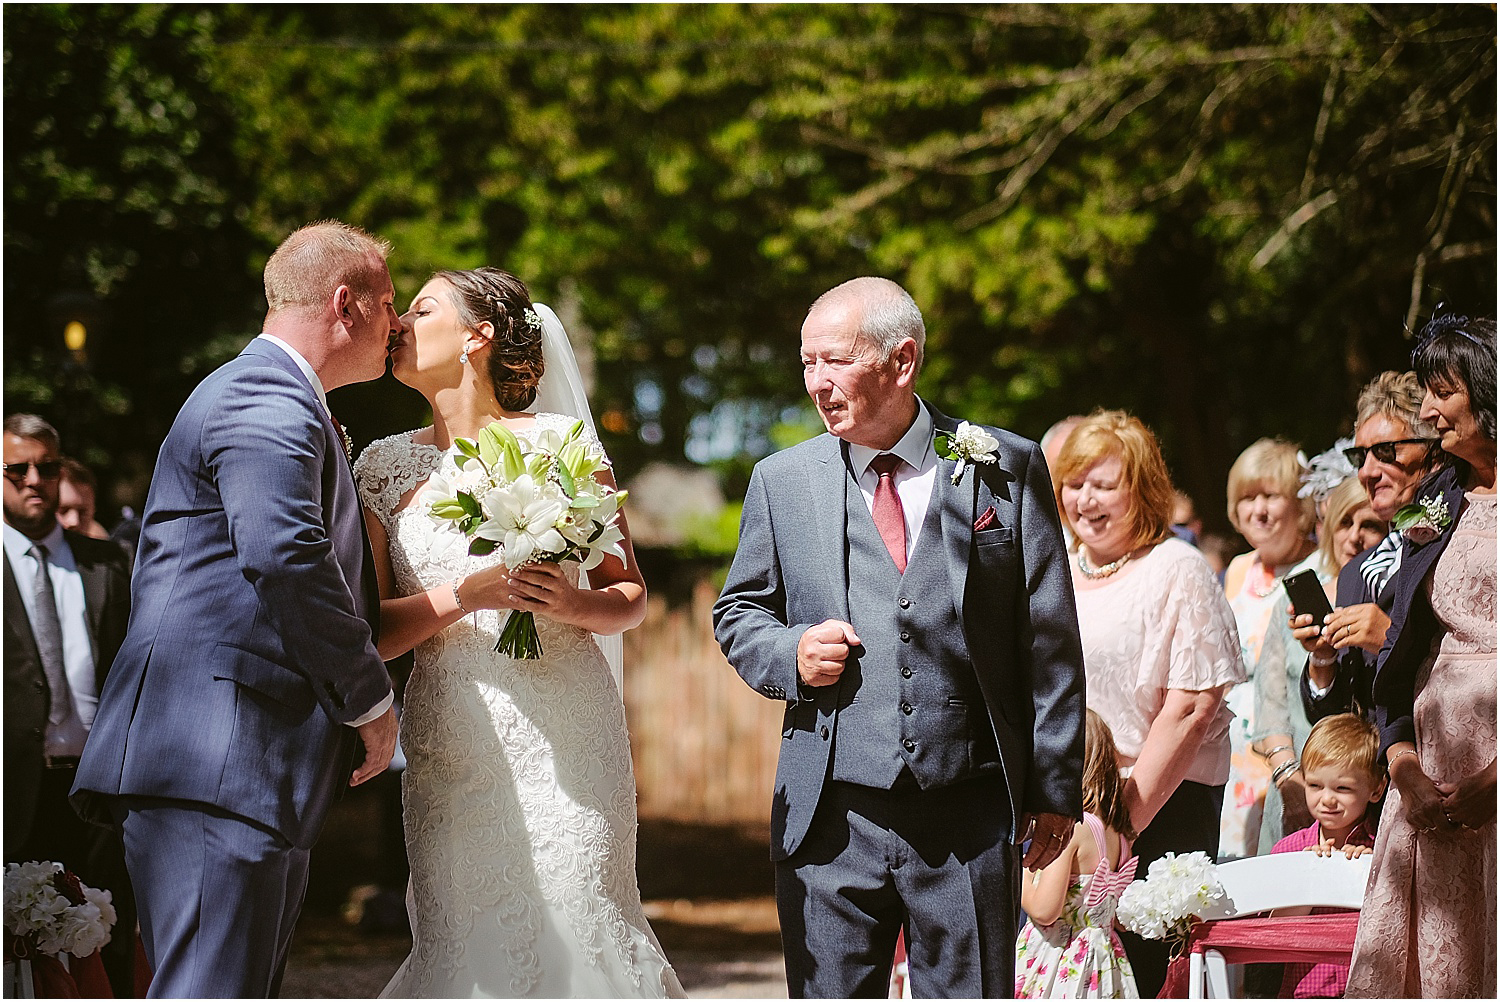 Wedding at Beamish Hall - wedding photography by www.2tonephotography.co.uk 142.jpg